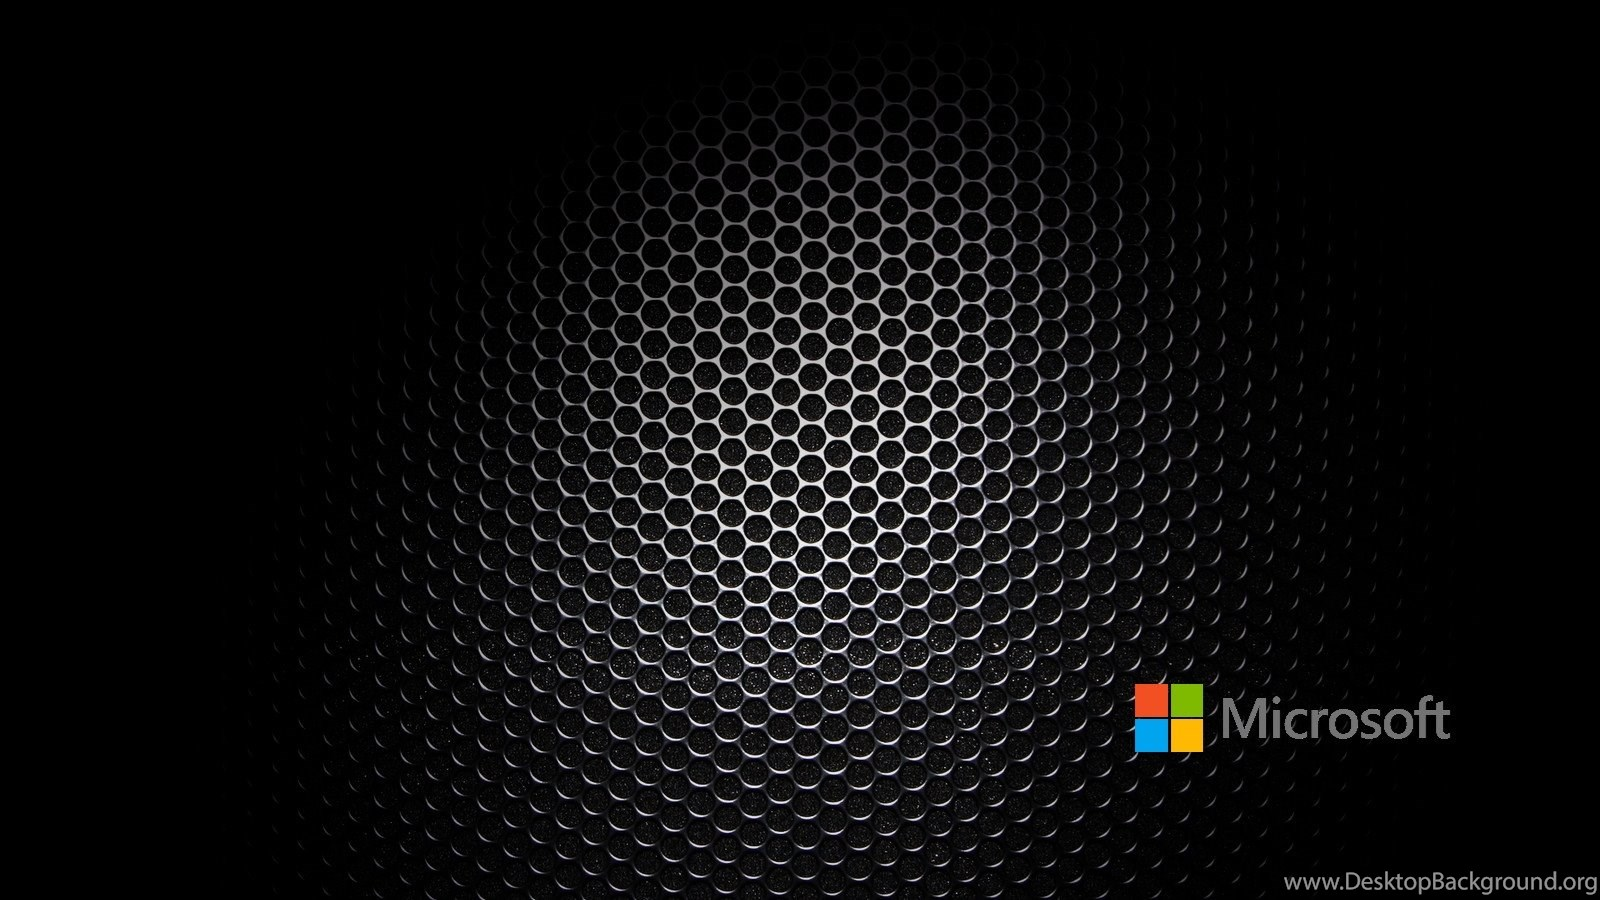 free microsoft wallpapers for windows desktop background